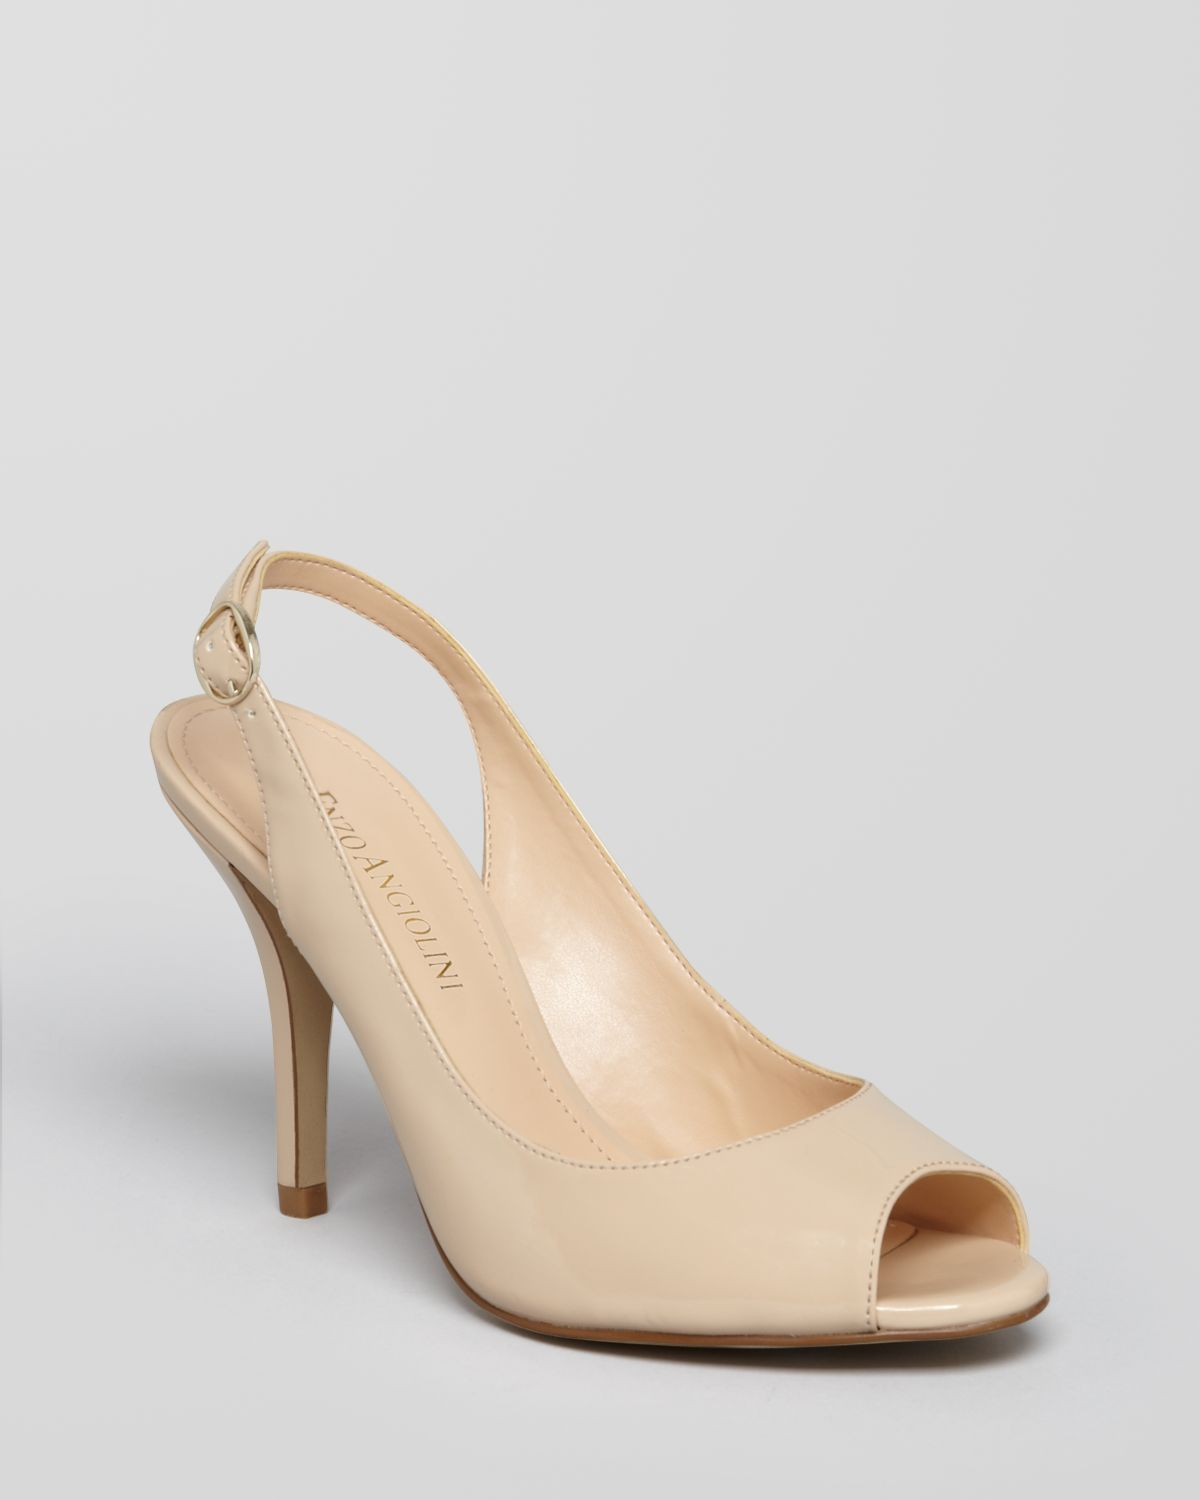 Slingback Pumps. Step out in comfortably chic slingback pumps. High heels like pumps are a great shoe for any day of the week, putting bounce in your step and smoothing every cybergamesl.ga with even shorter heels change the alignment of the spine, improving posture.